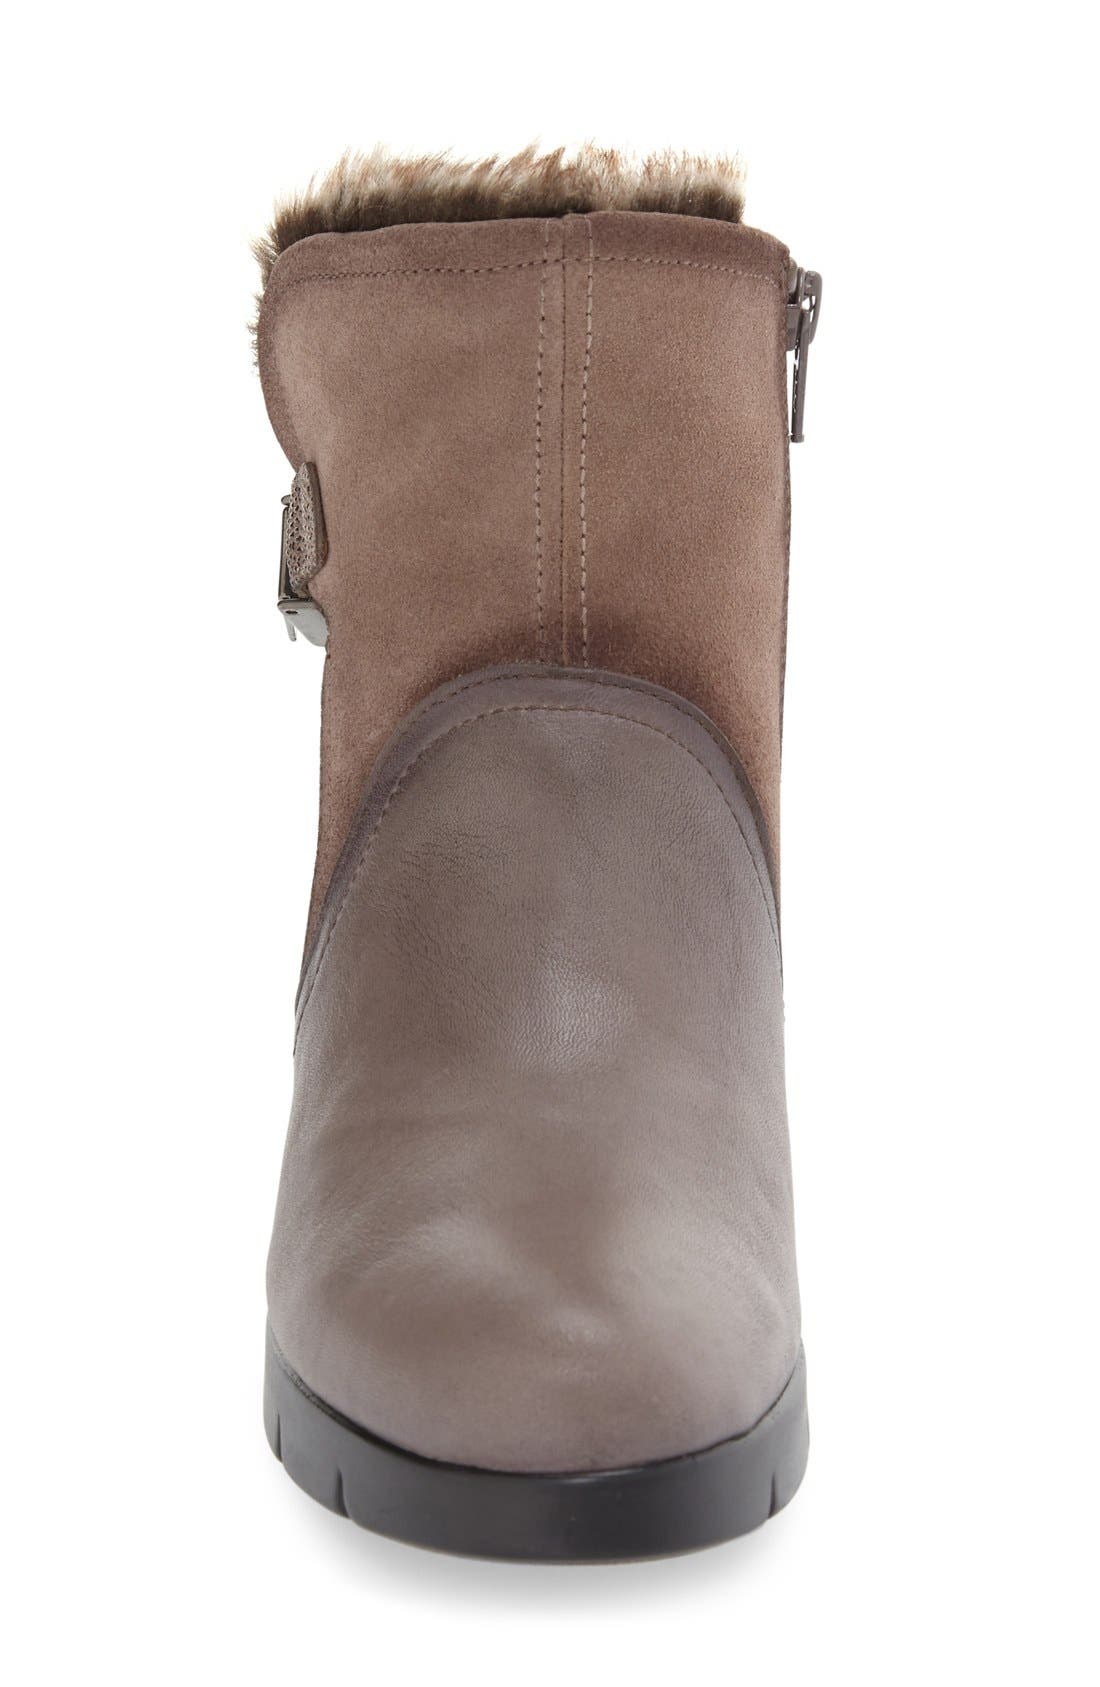 'Langley' Boot,                             Alternate thumbnail 3, color,                             260